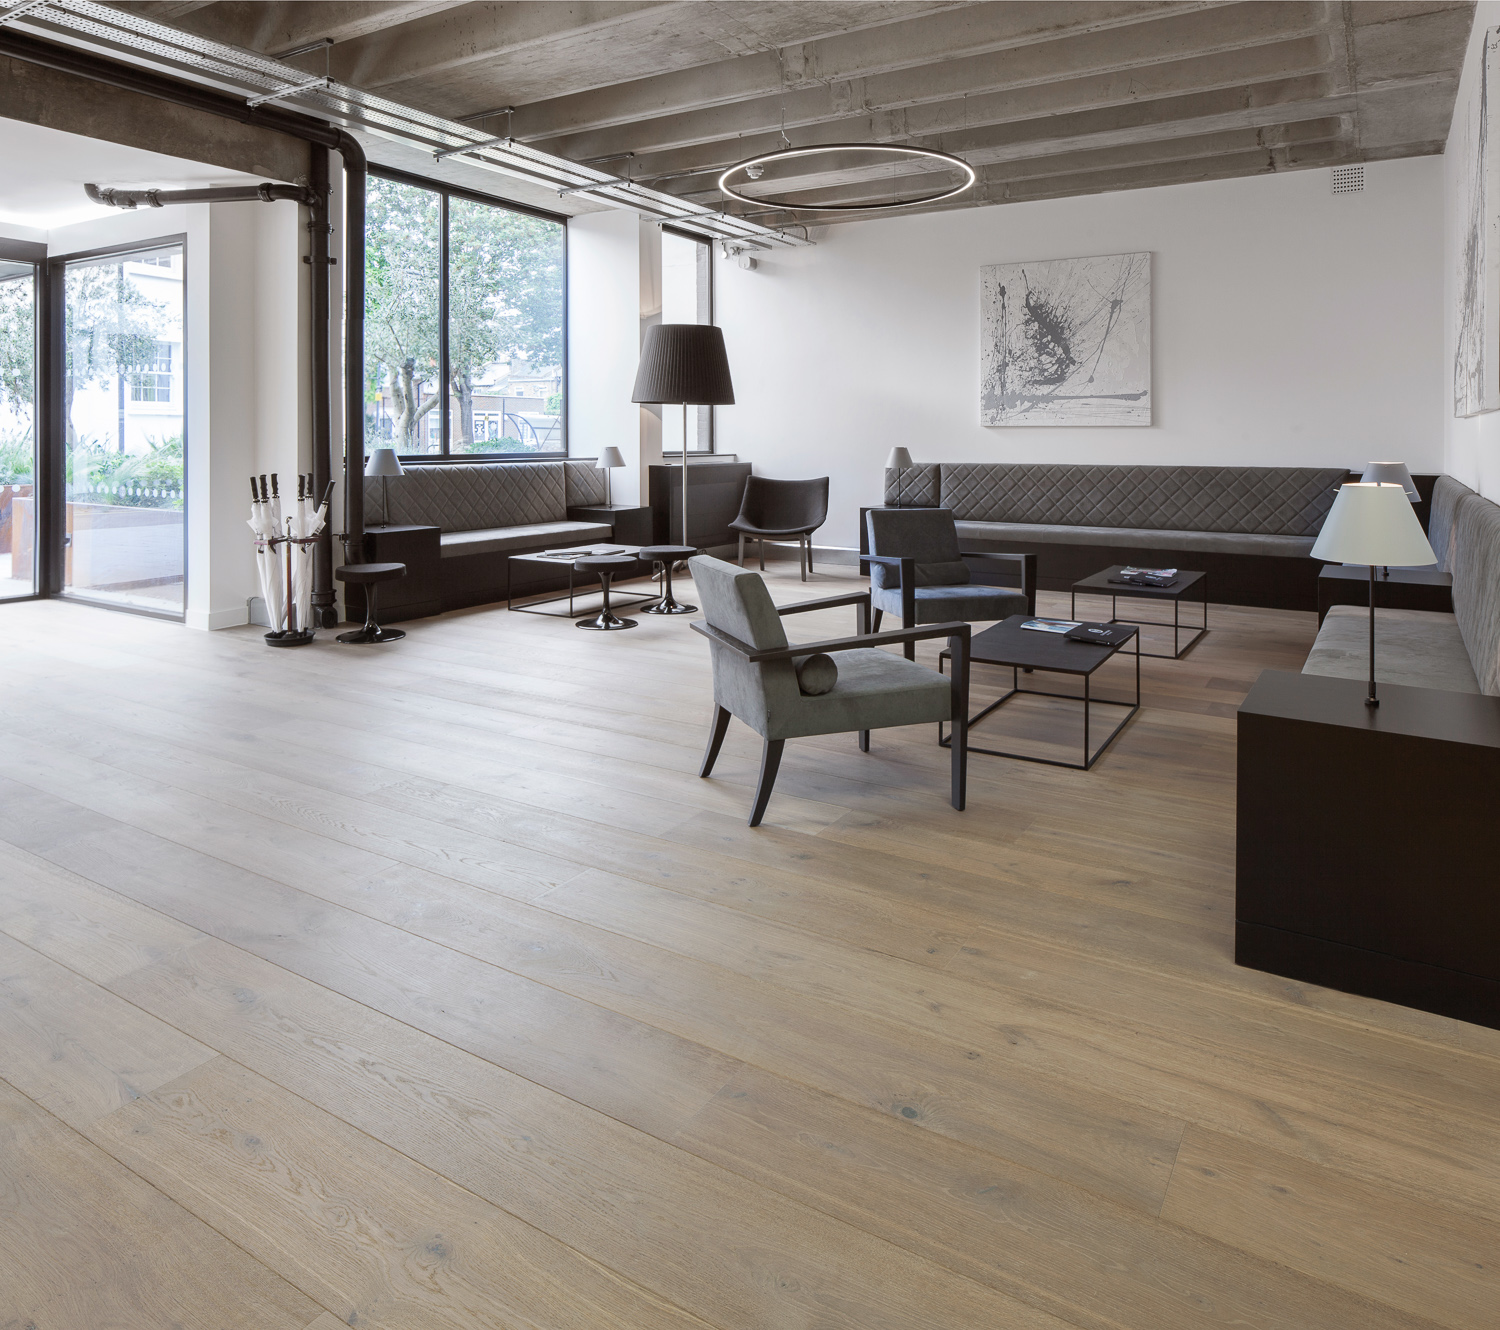 What kind of floor will transform the interior beyond recognition